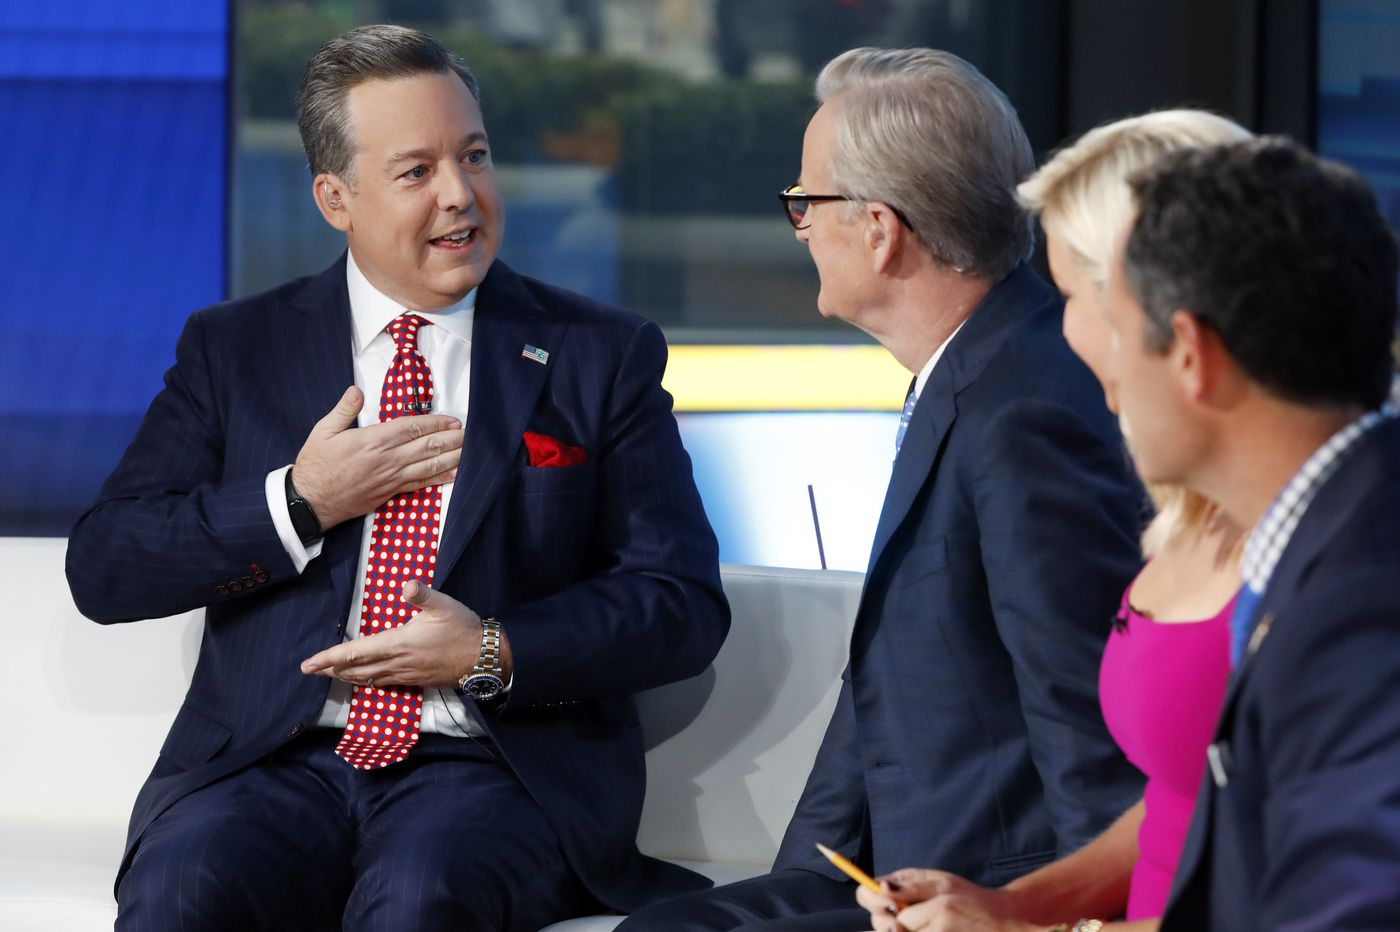 Fox News anchor Ed Henry fired over sexual misconduct allegations